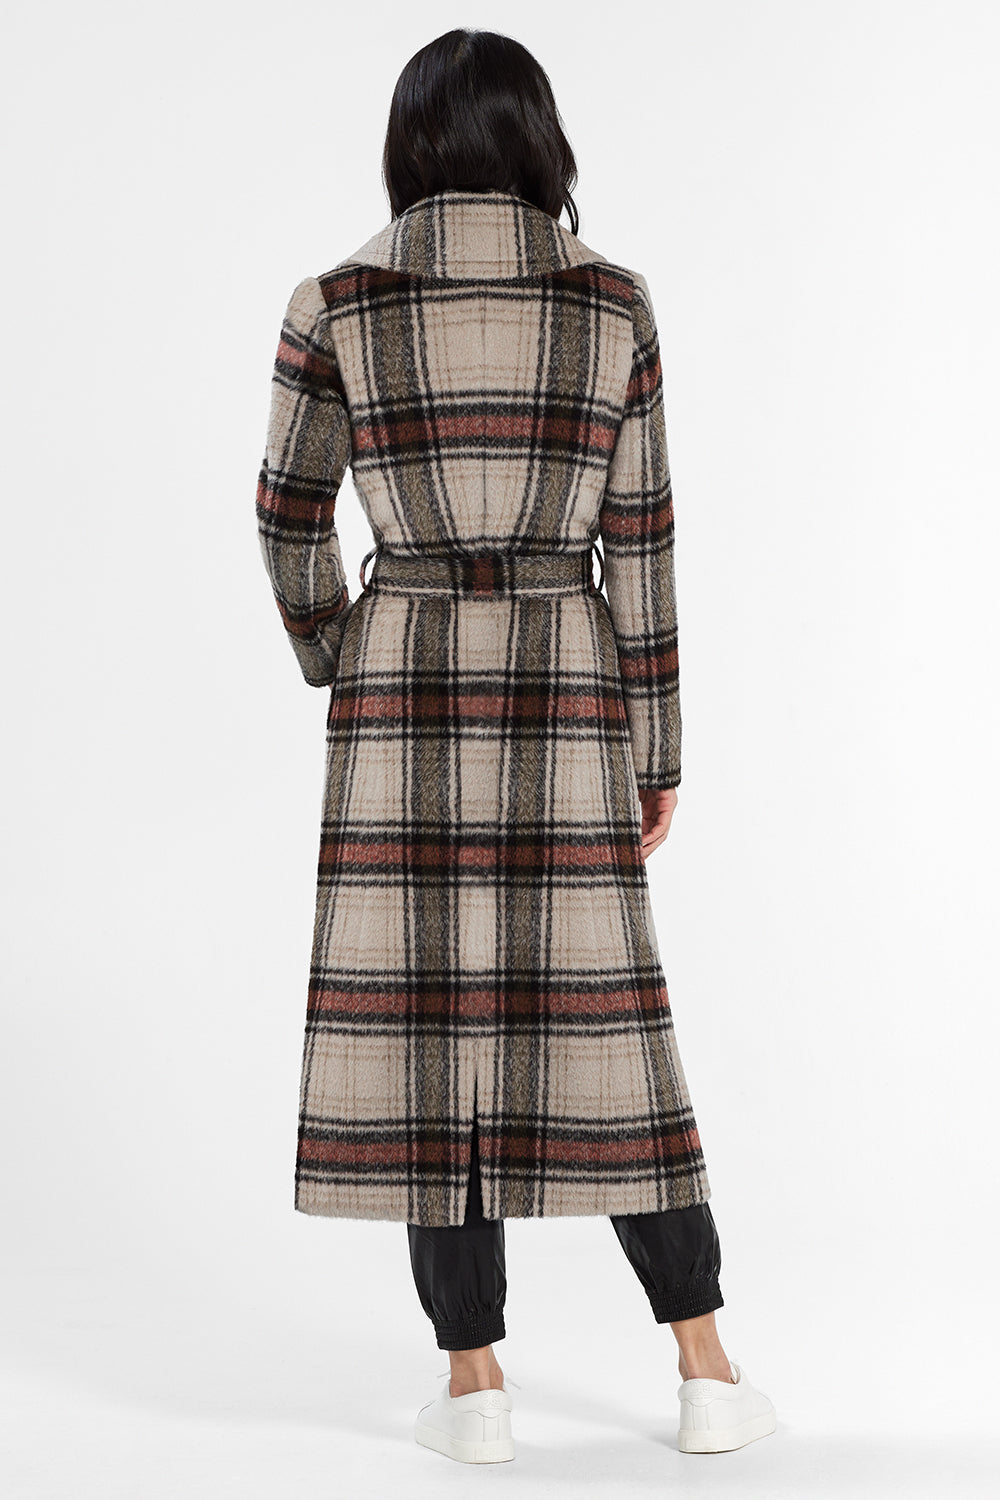 Sentaler Plaid Long Notched Collar Wrap Coat featured in Suri Alpaca and available in Sand Plaid. Seen from back.